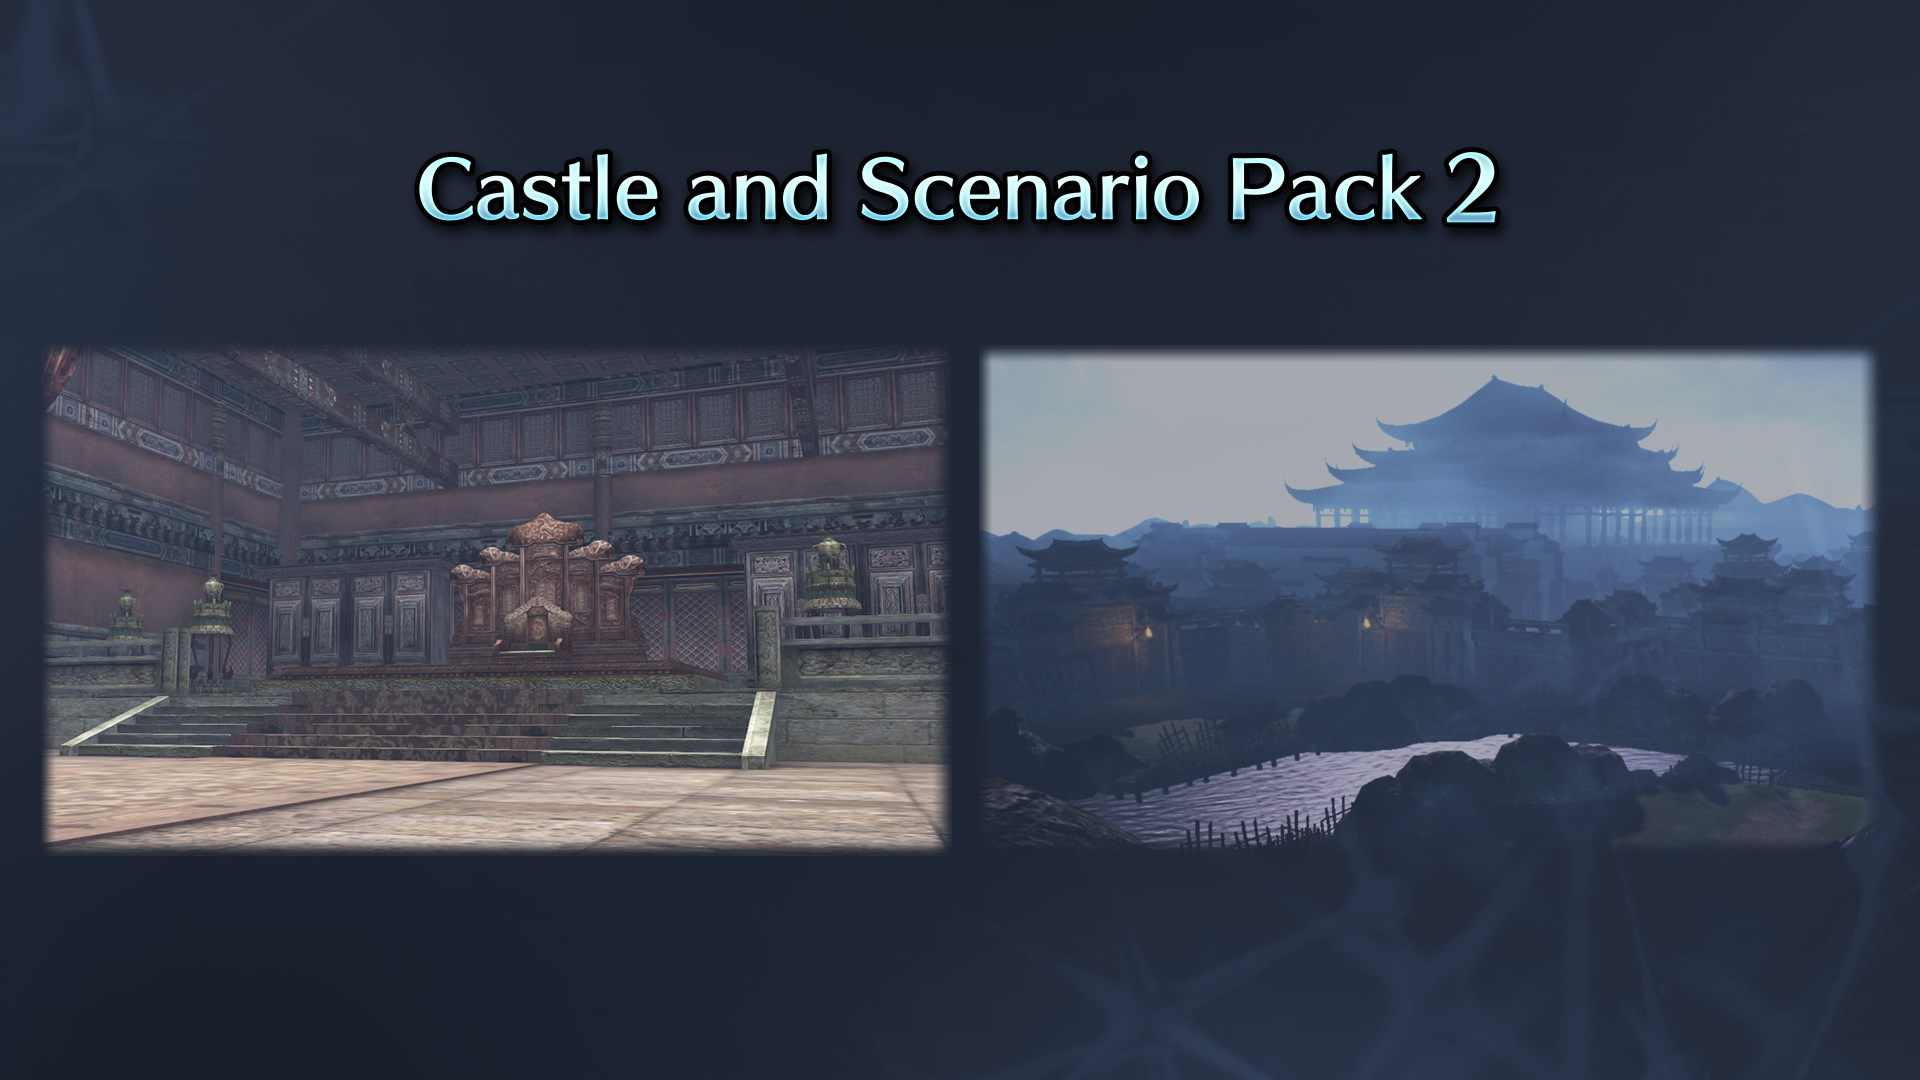 Castle and Scenario Pack 2